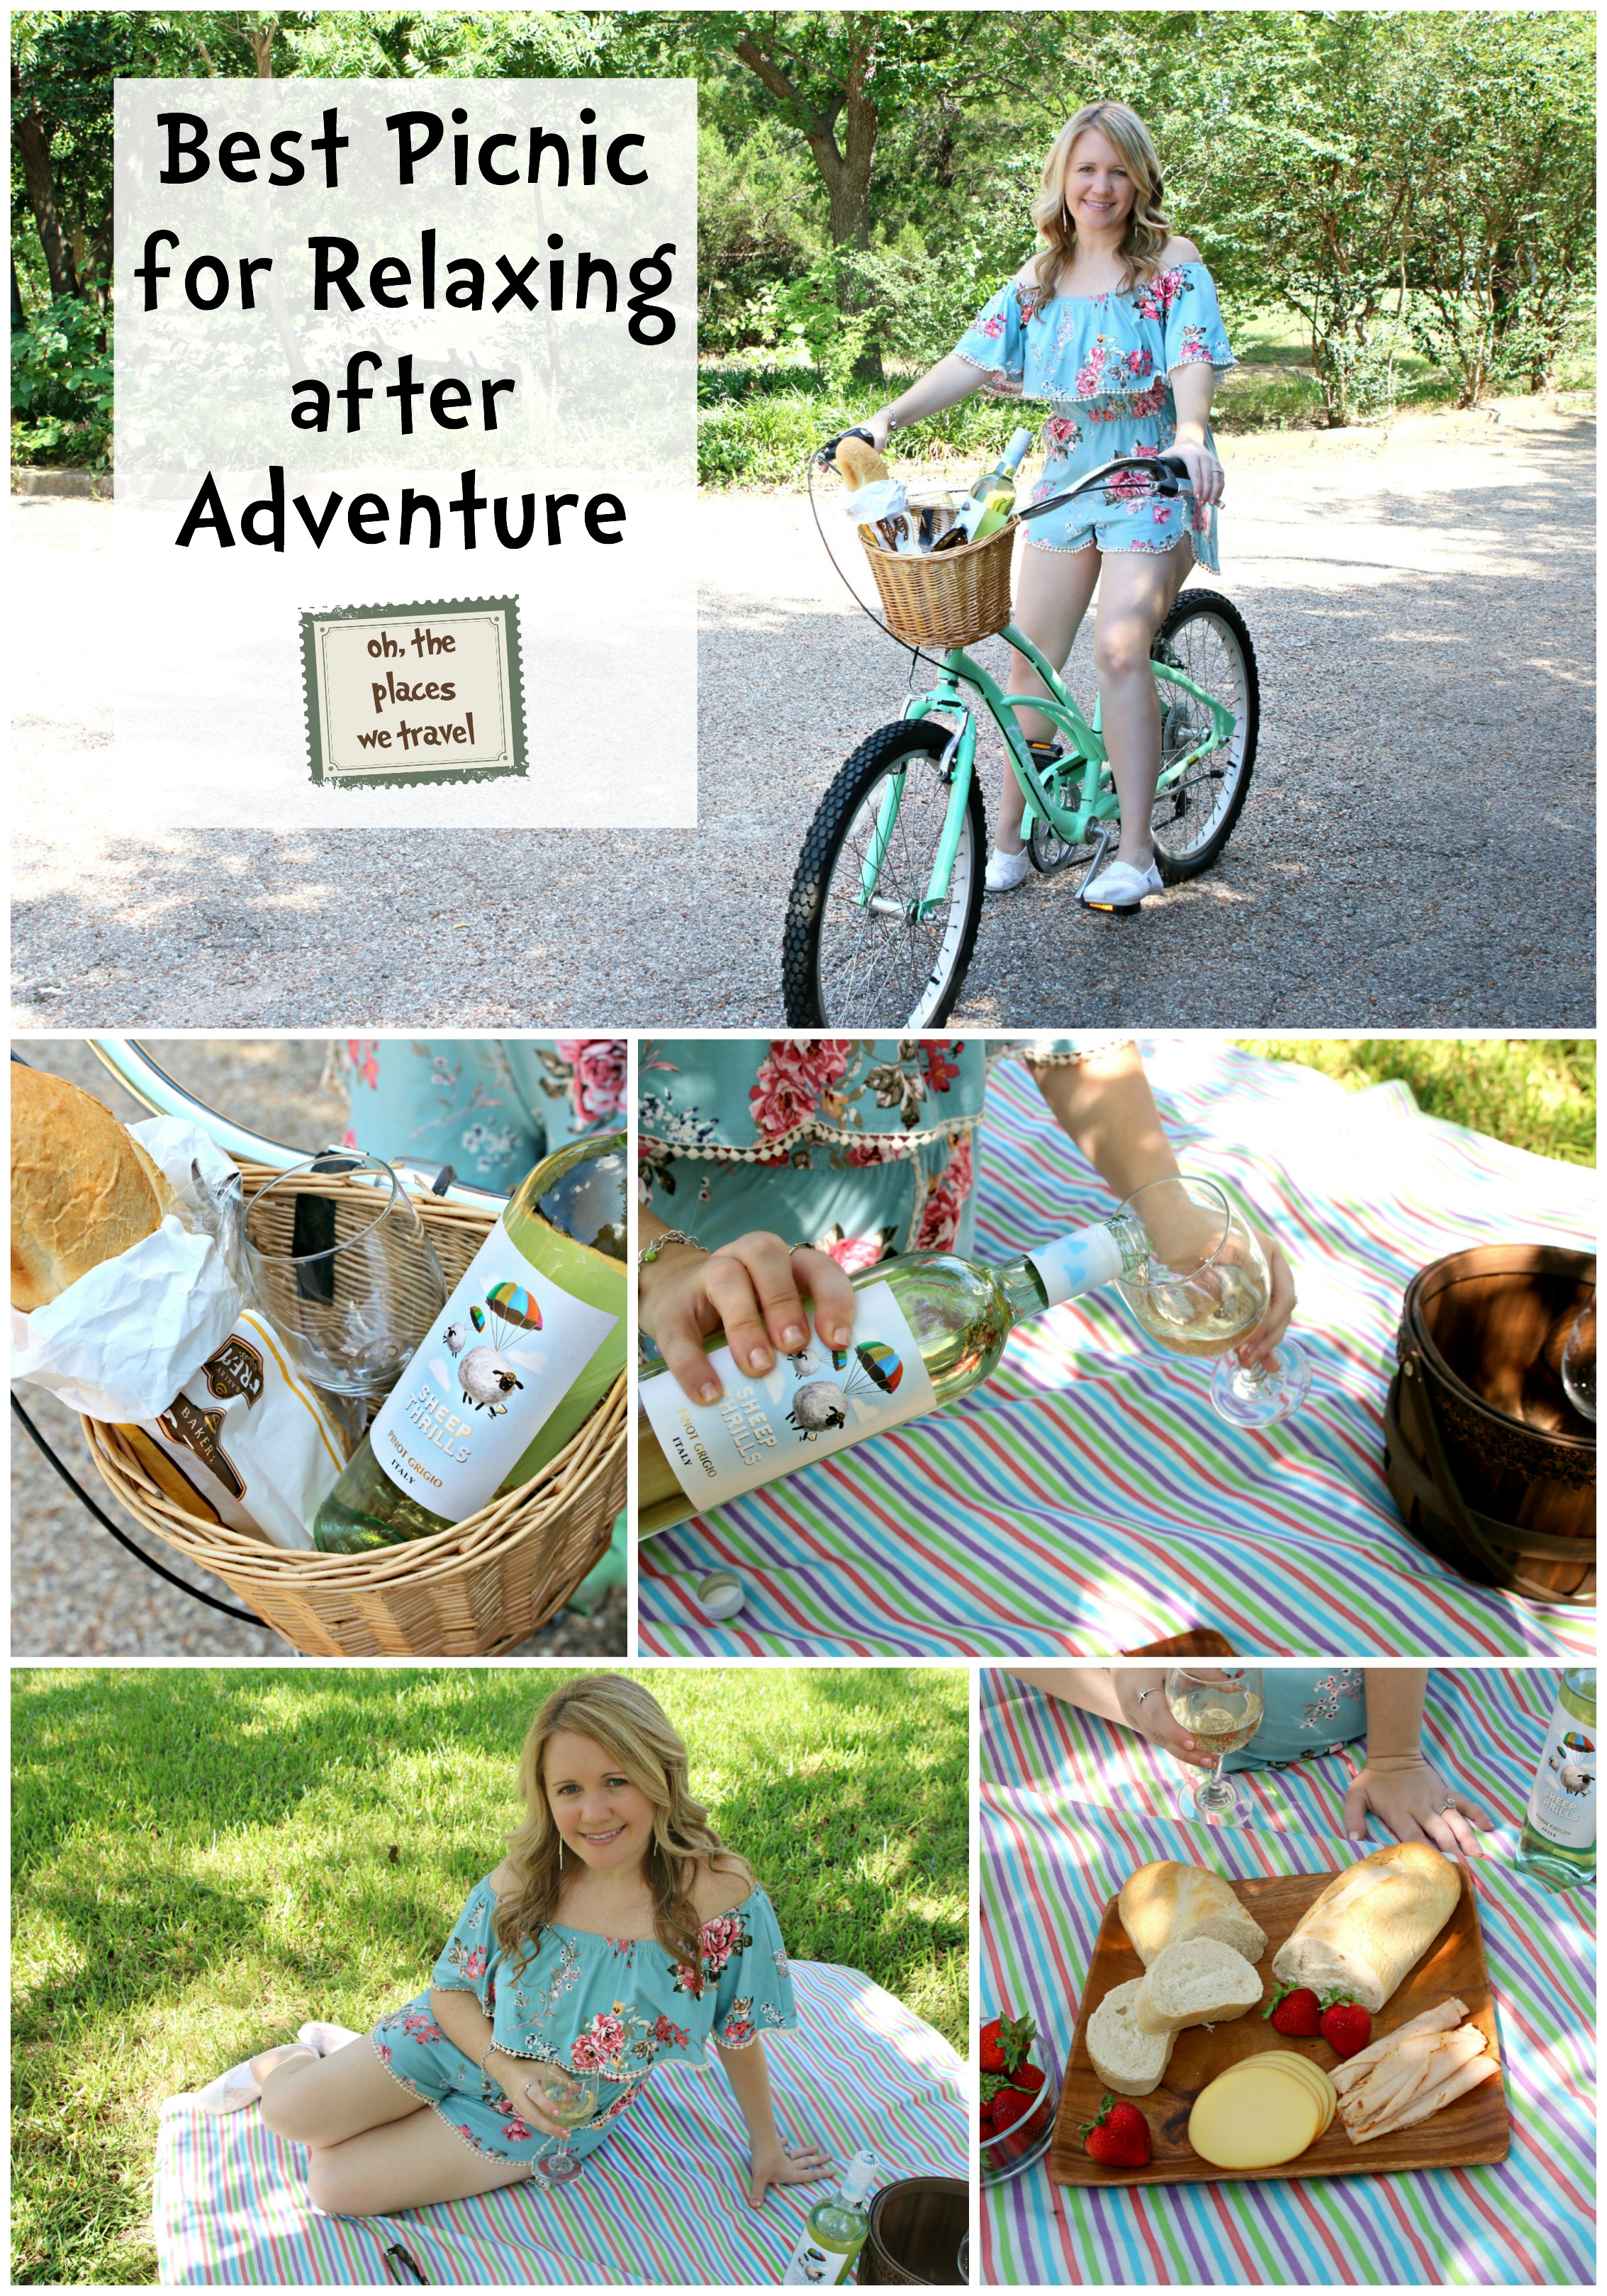 Best Picnic for Relaxing after Adventure